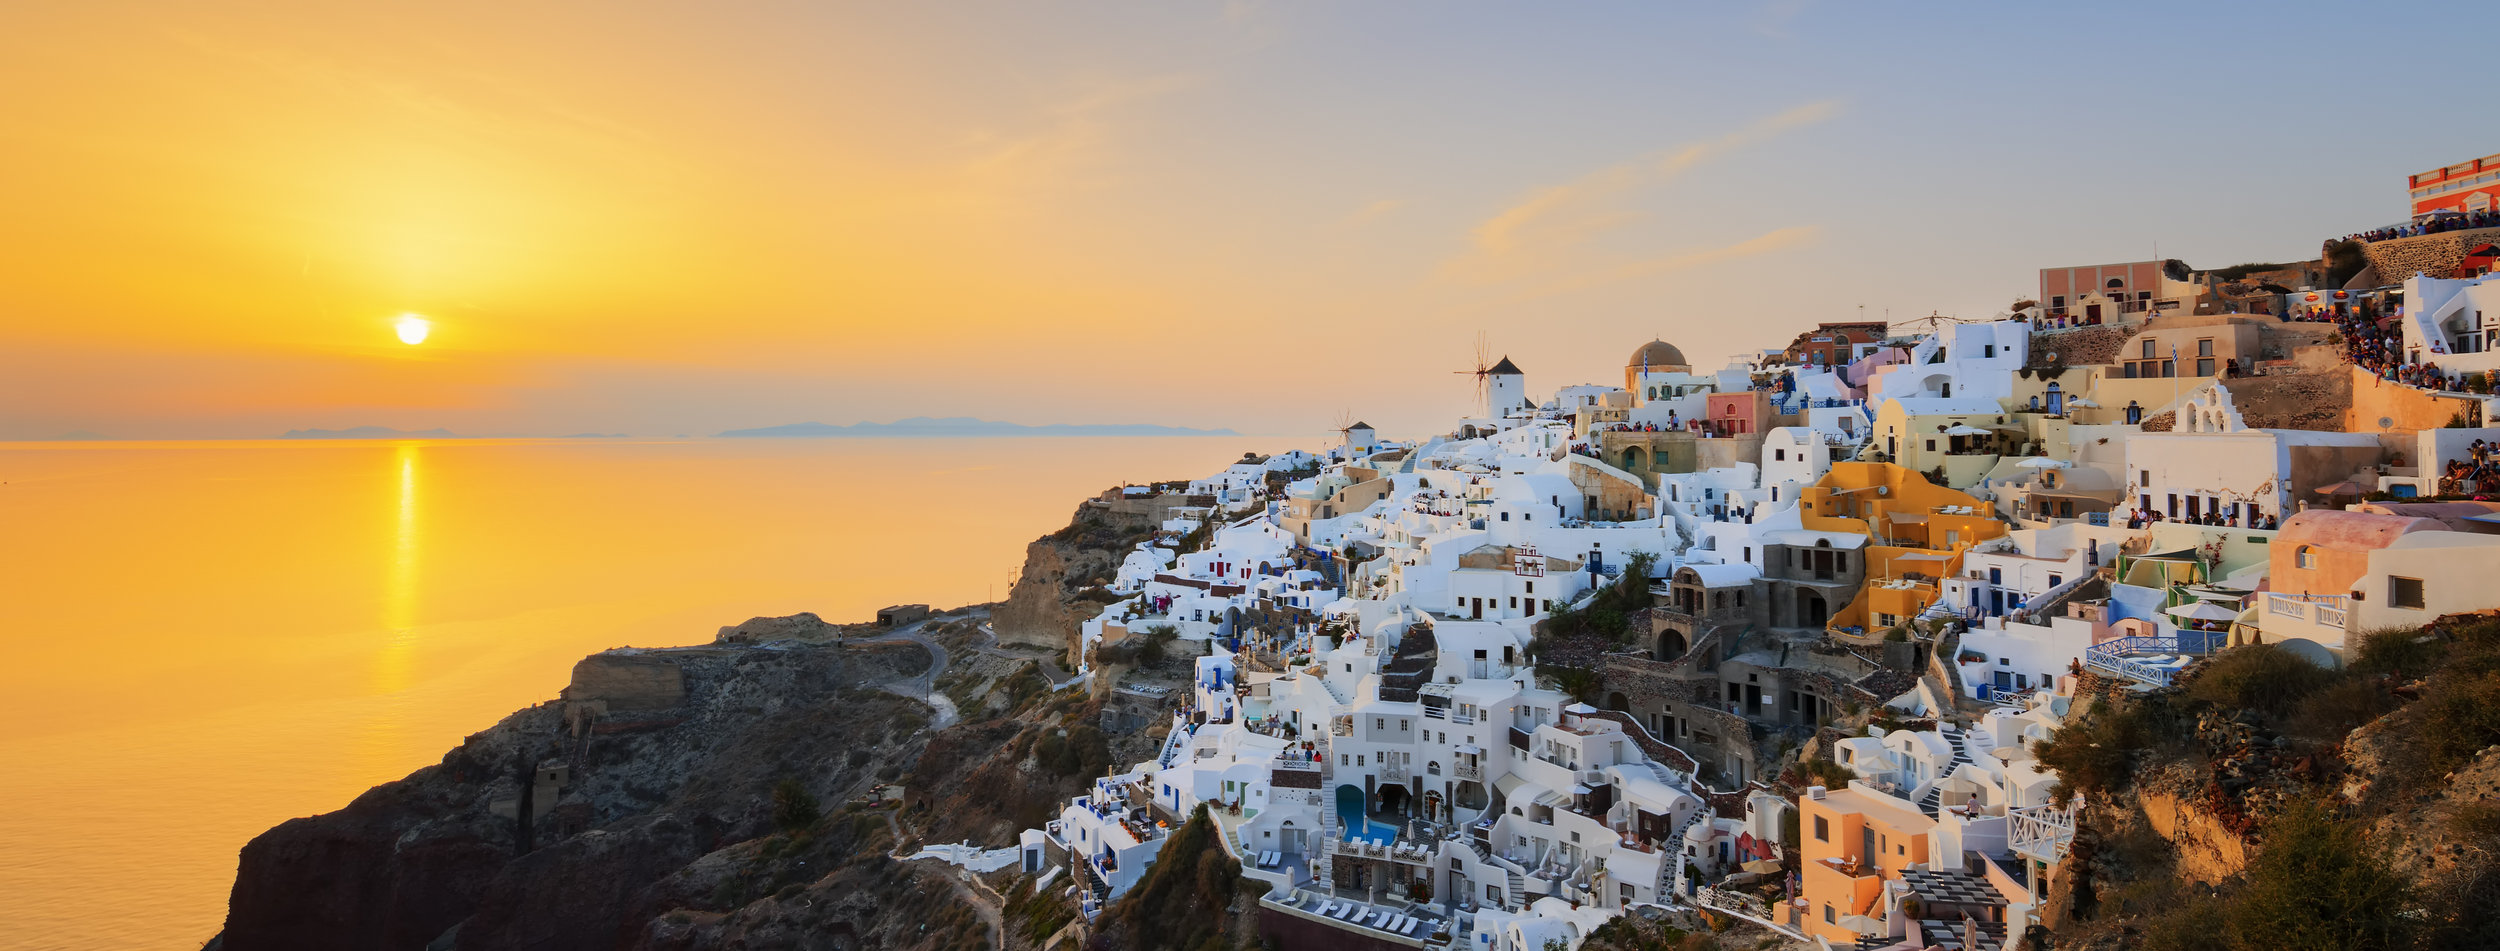 Panoramic-view-of-Oia-at-sunset-578310406_5760x2191.jpeg